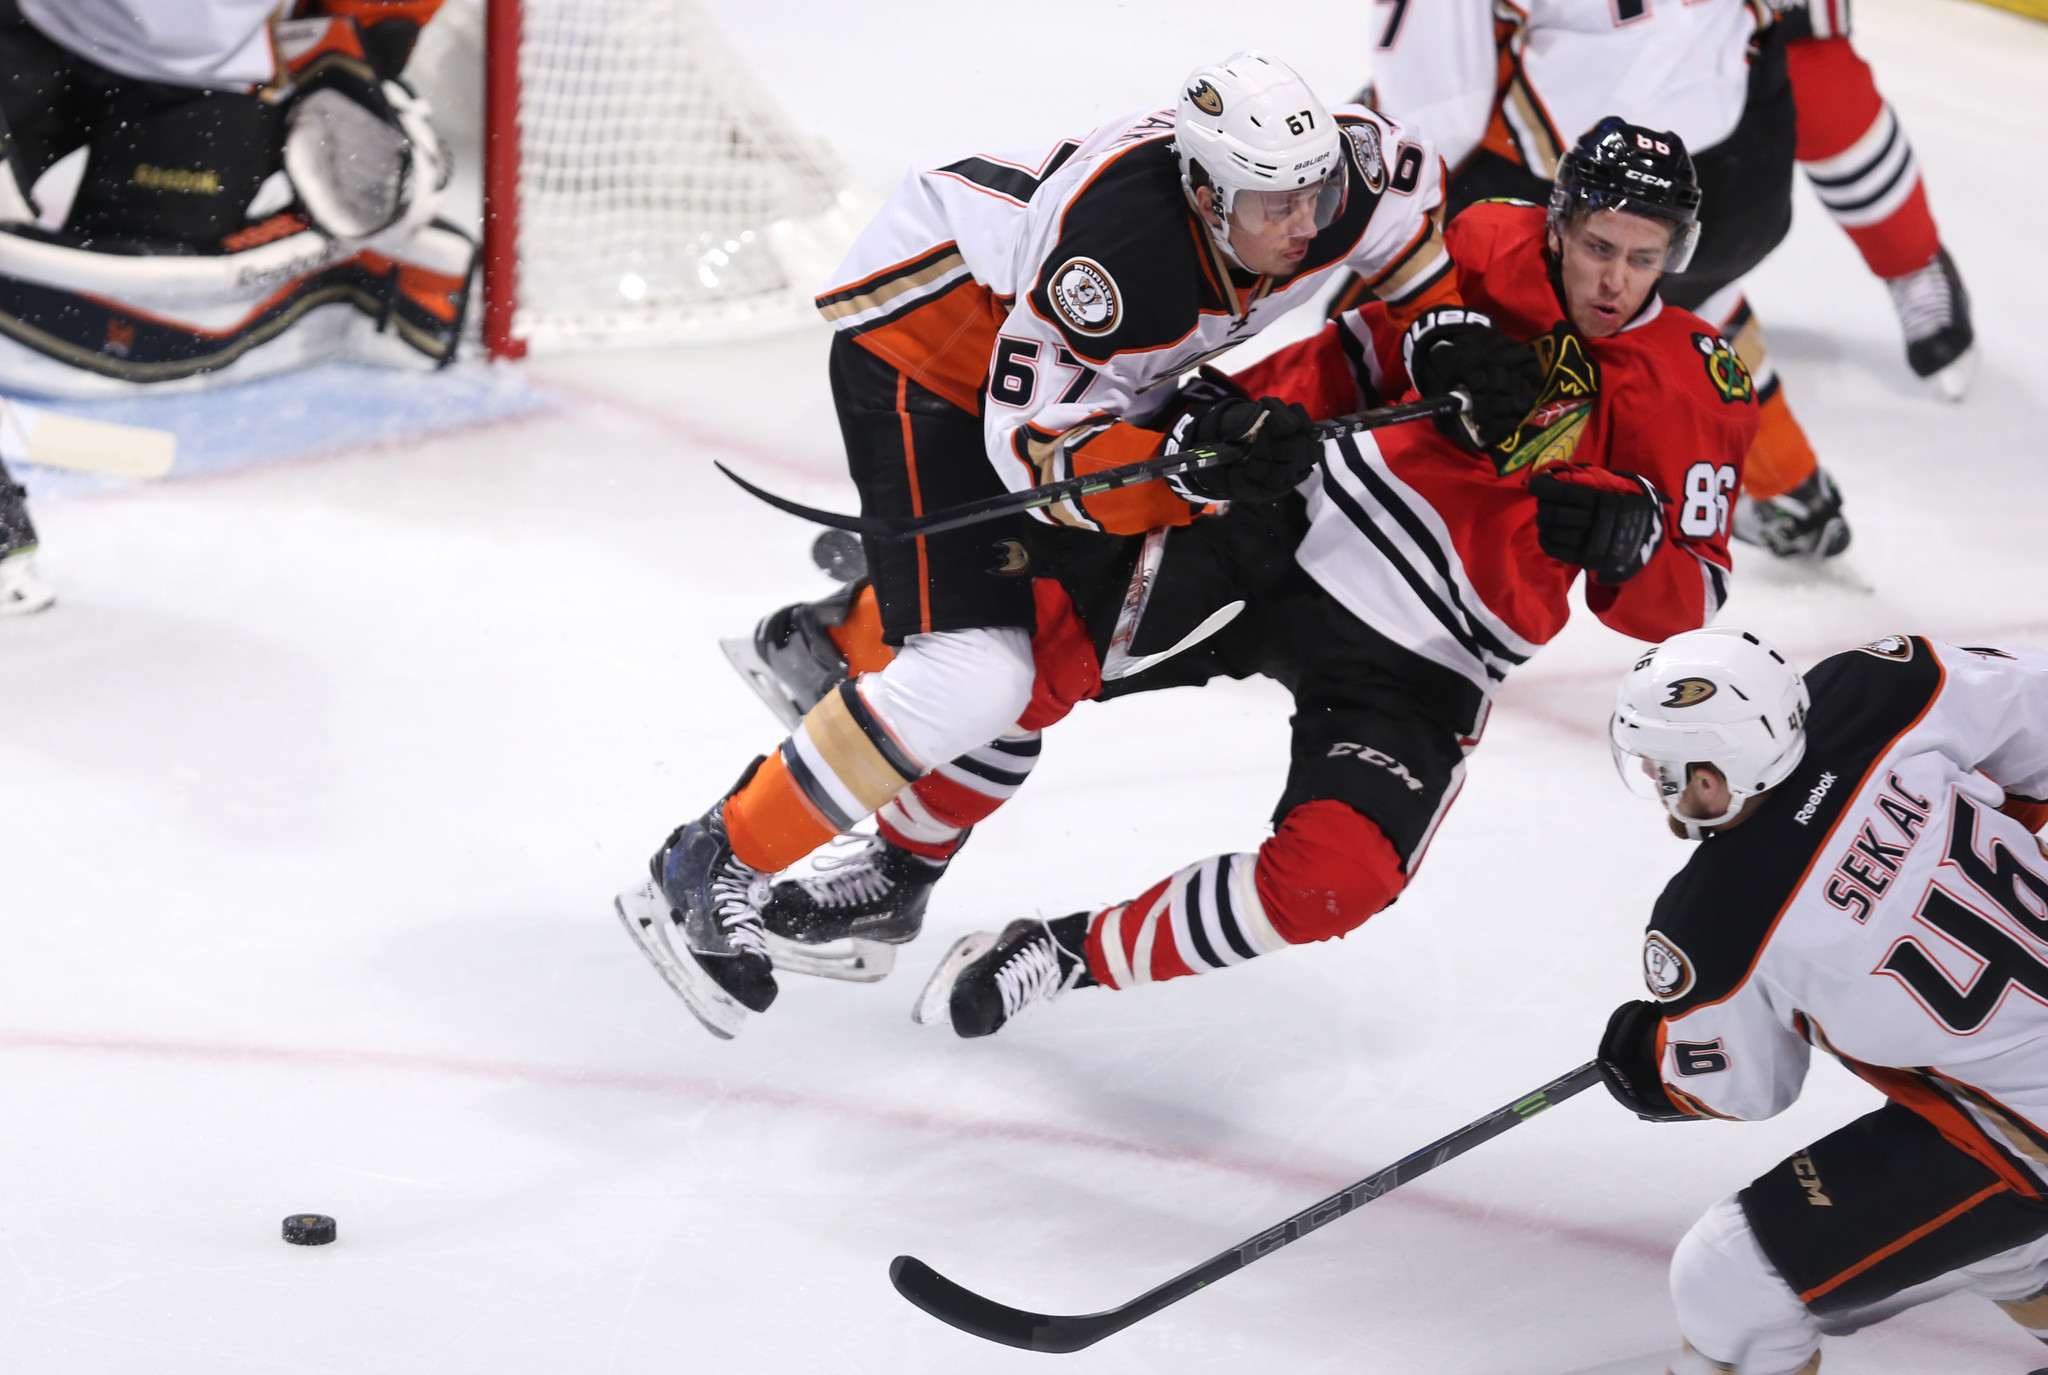 Blackhawks, Ducks getting testy in Western Conference finals